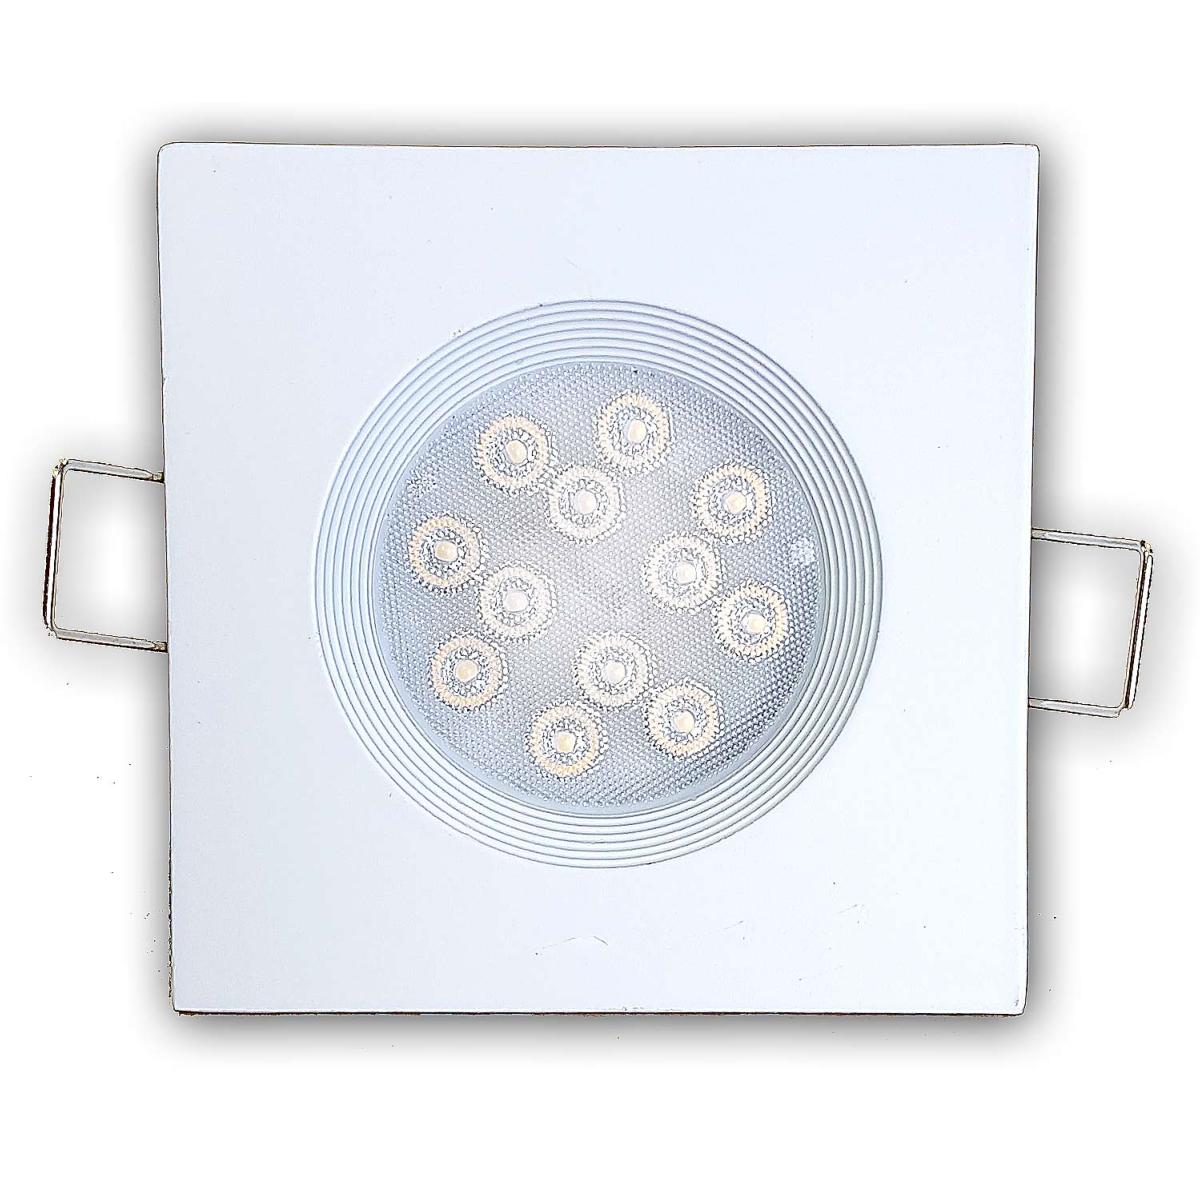 Spot Led Exterieur Philips Spot Led Gu10 Encastrable Blanc Led Philips 5w Rendu 50w